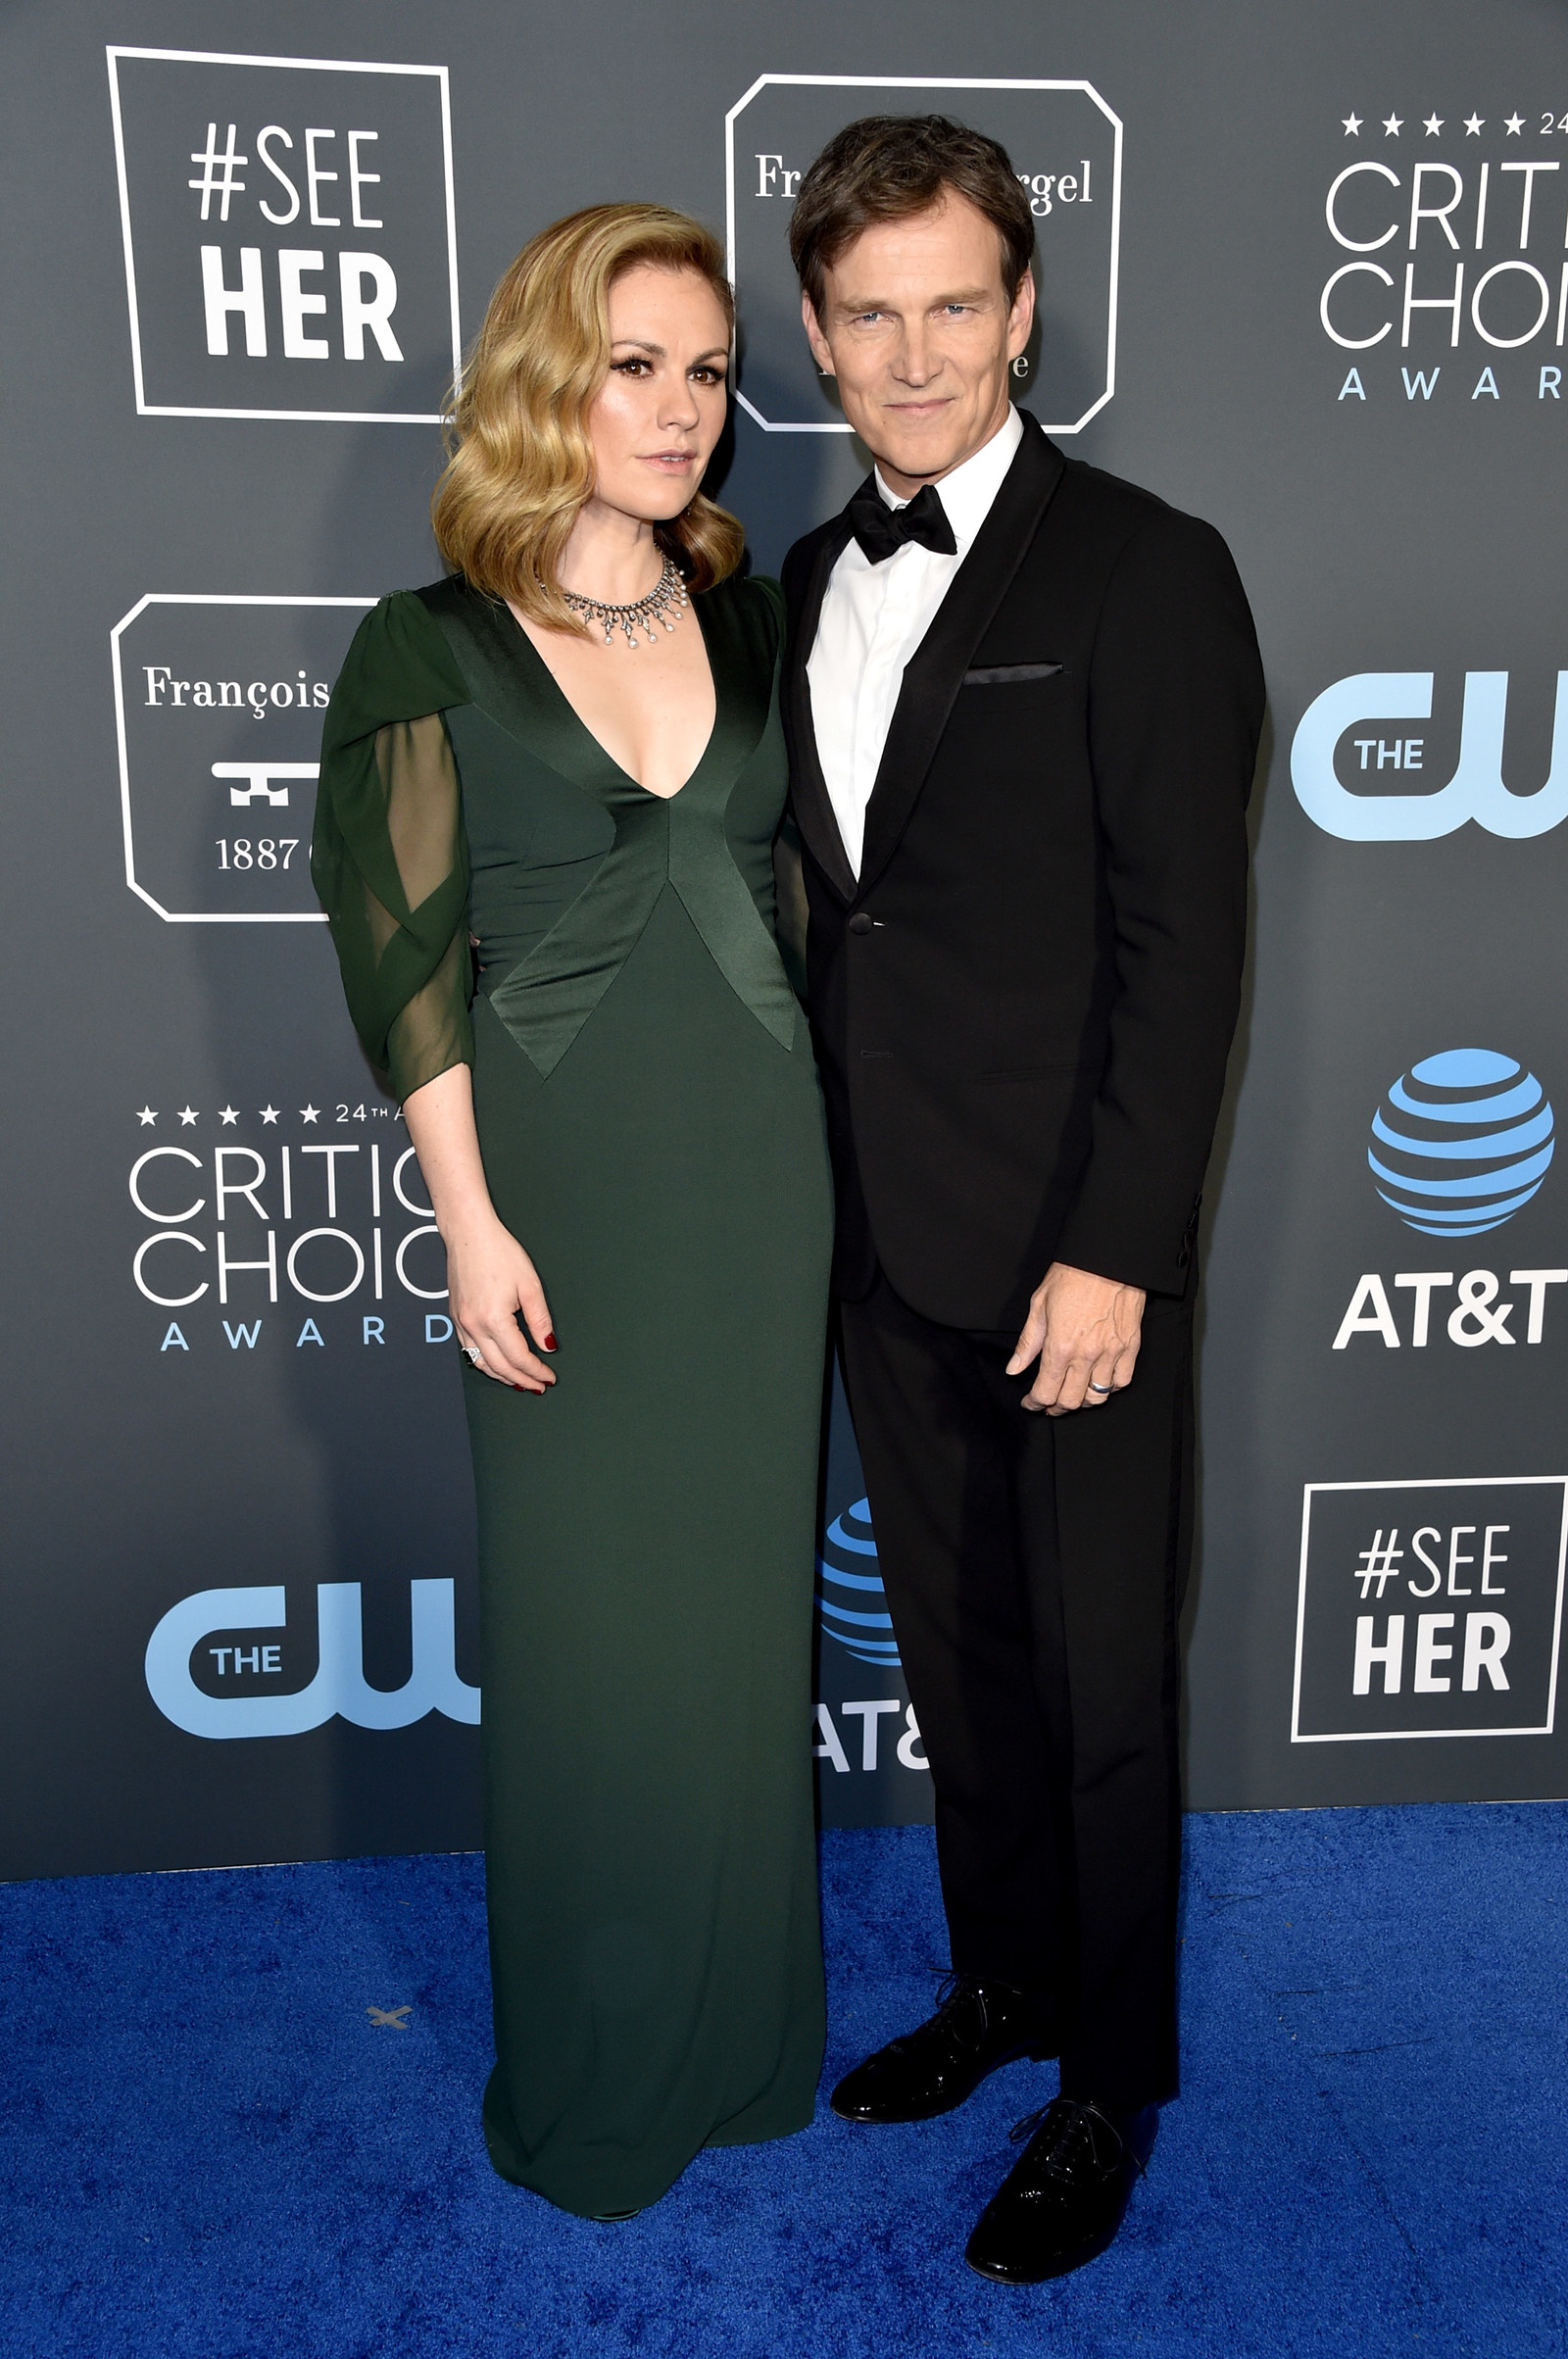 14 Of The Cutest Couples At The Critics' Choice Awards